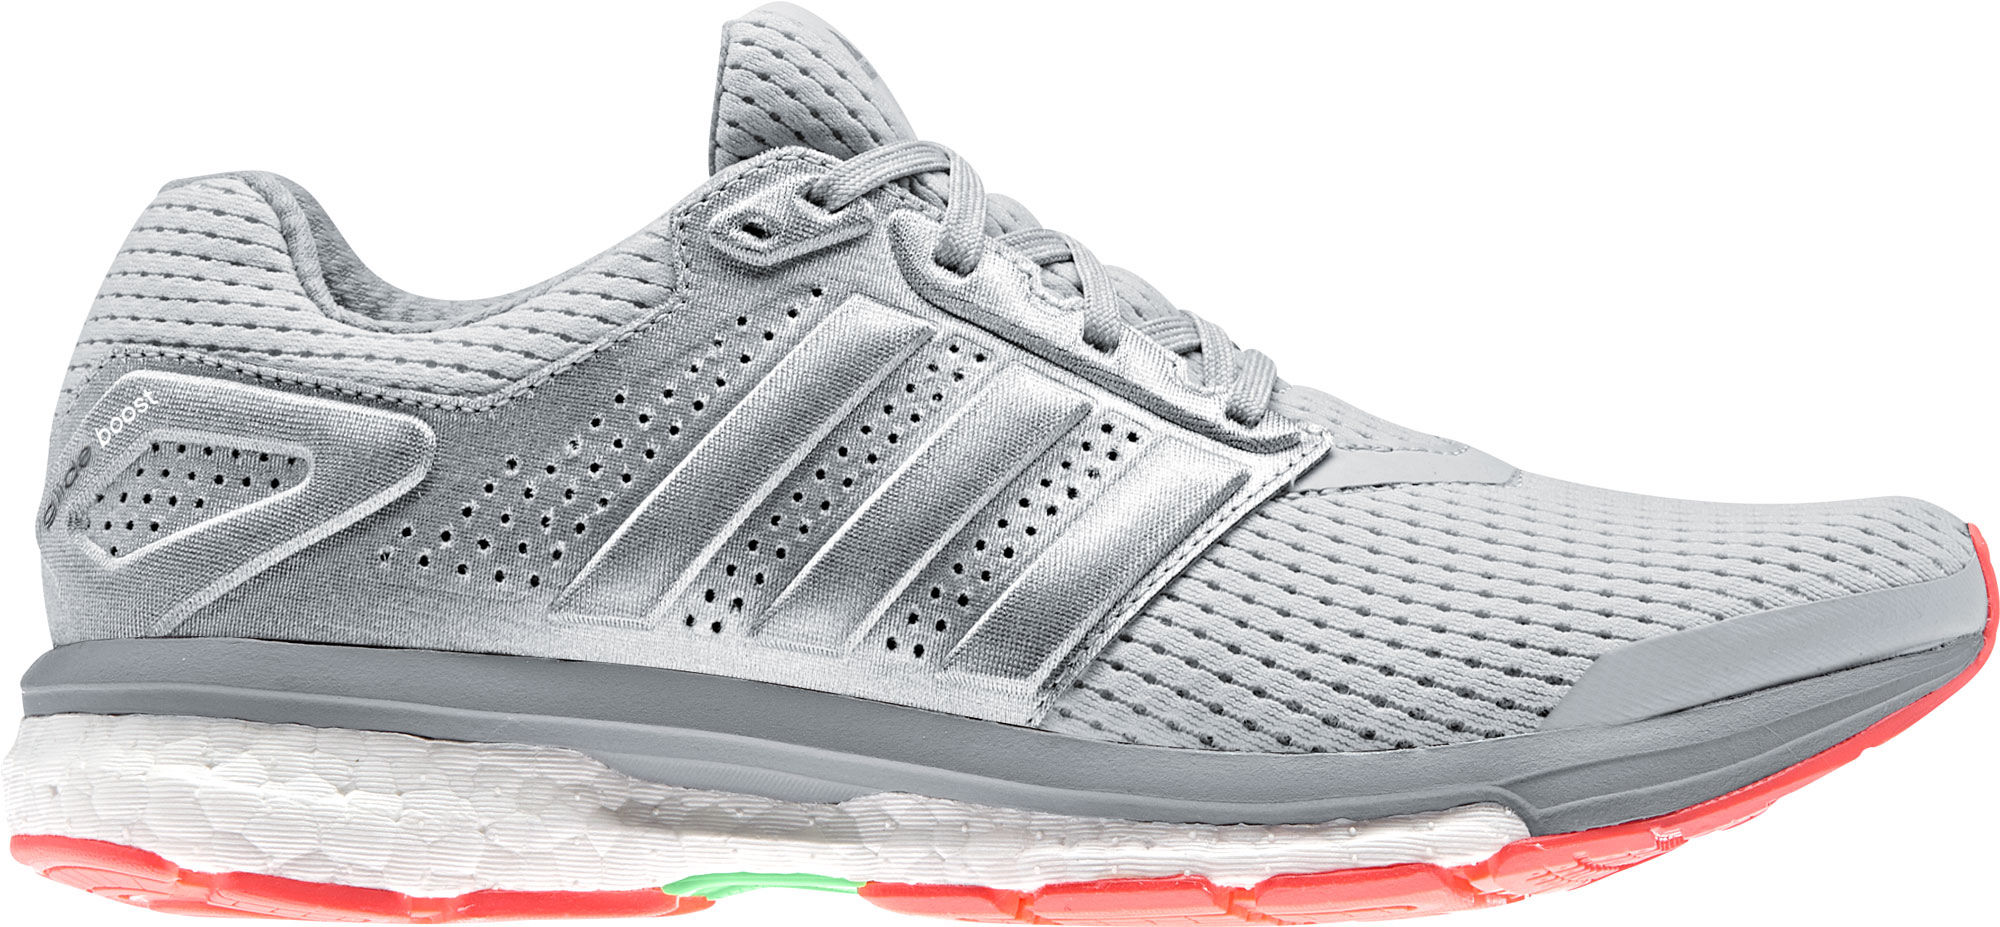 View in 360� 360� Play video. 1. /. 1. 360�. The adidas Supernova Glide 7  ...